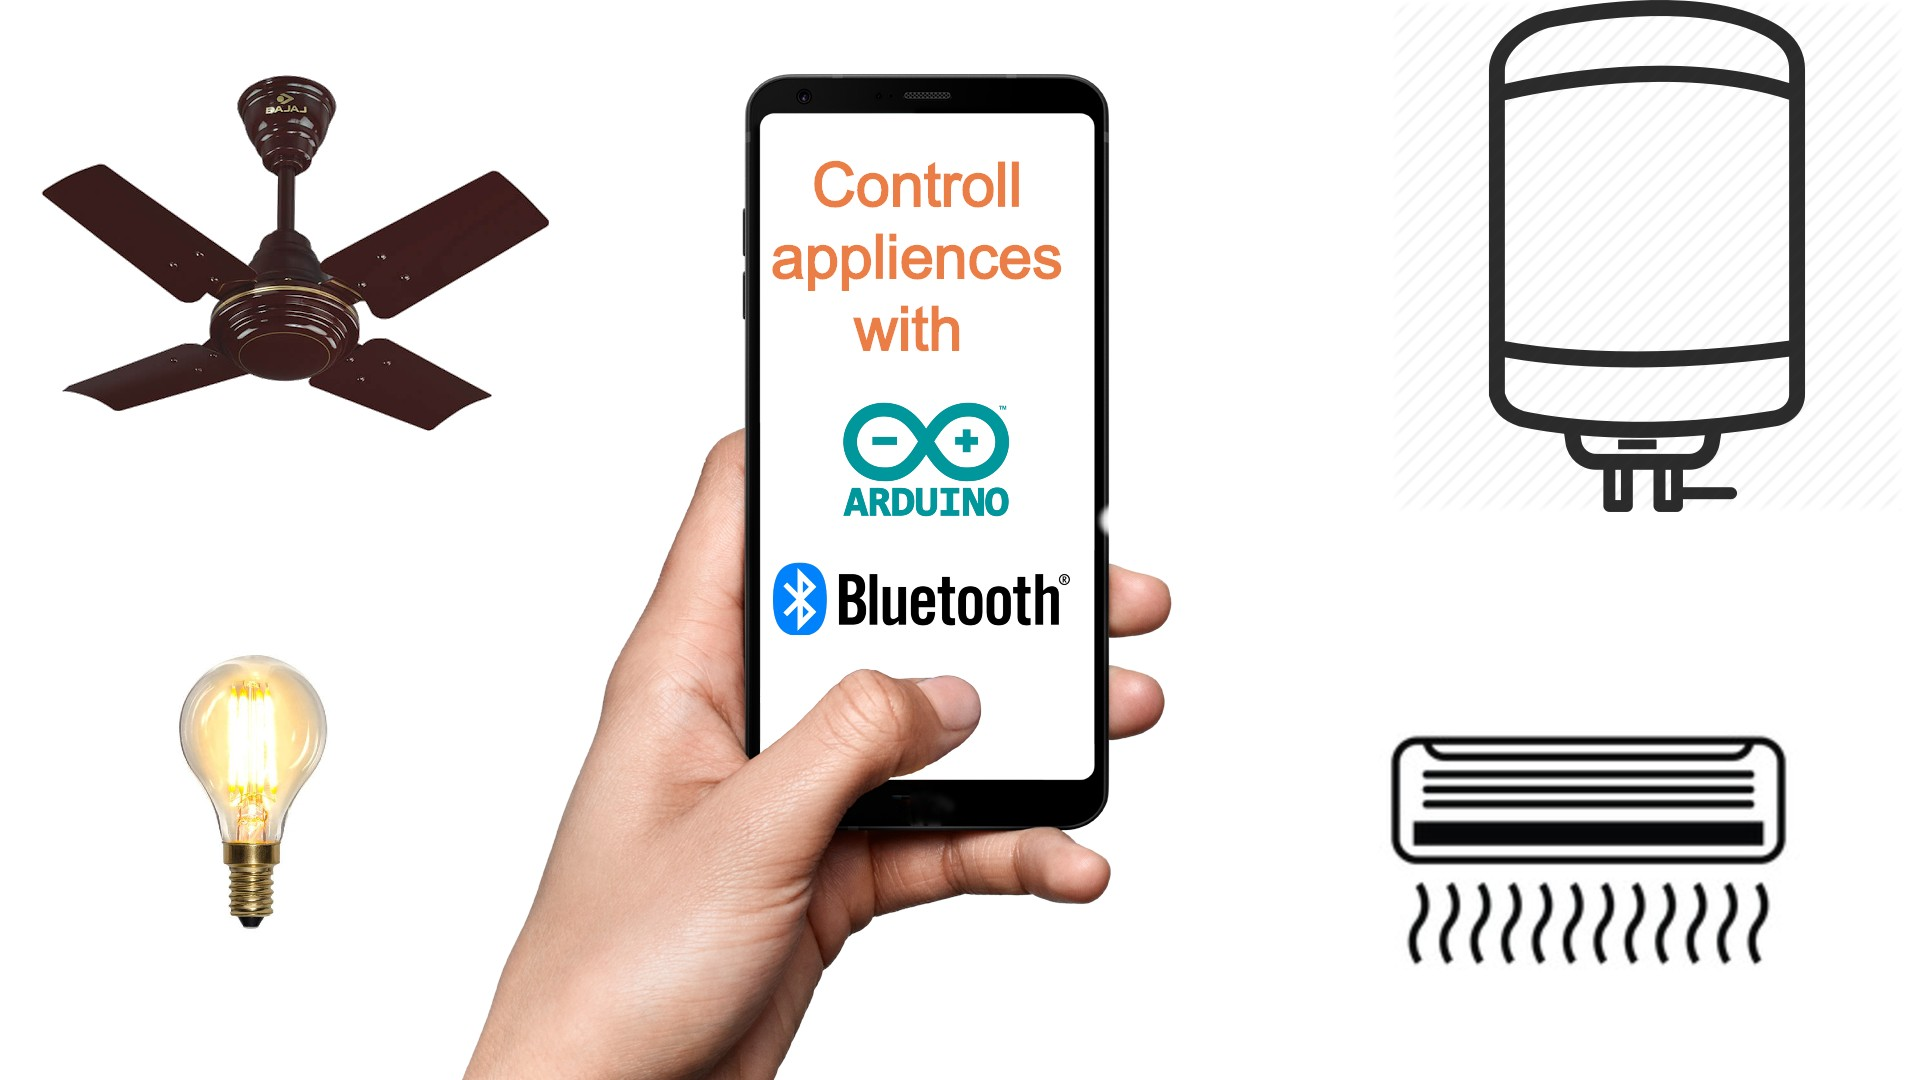 Home Automation Using Arduino UNO and Bluetooth